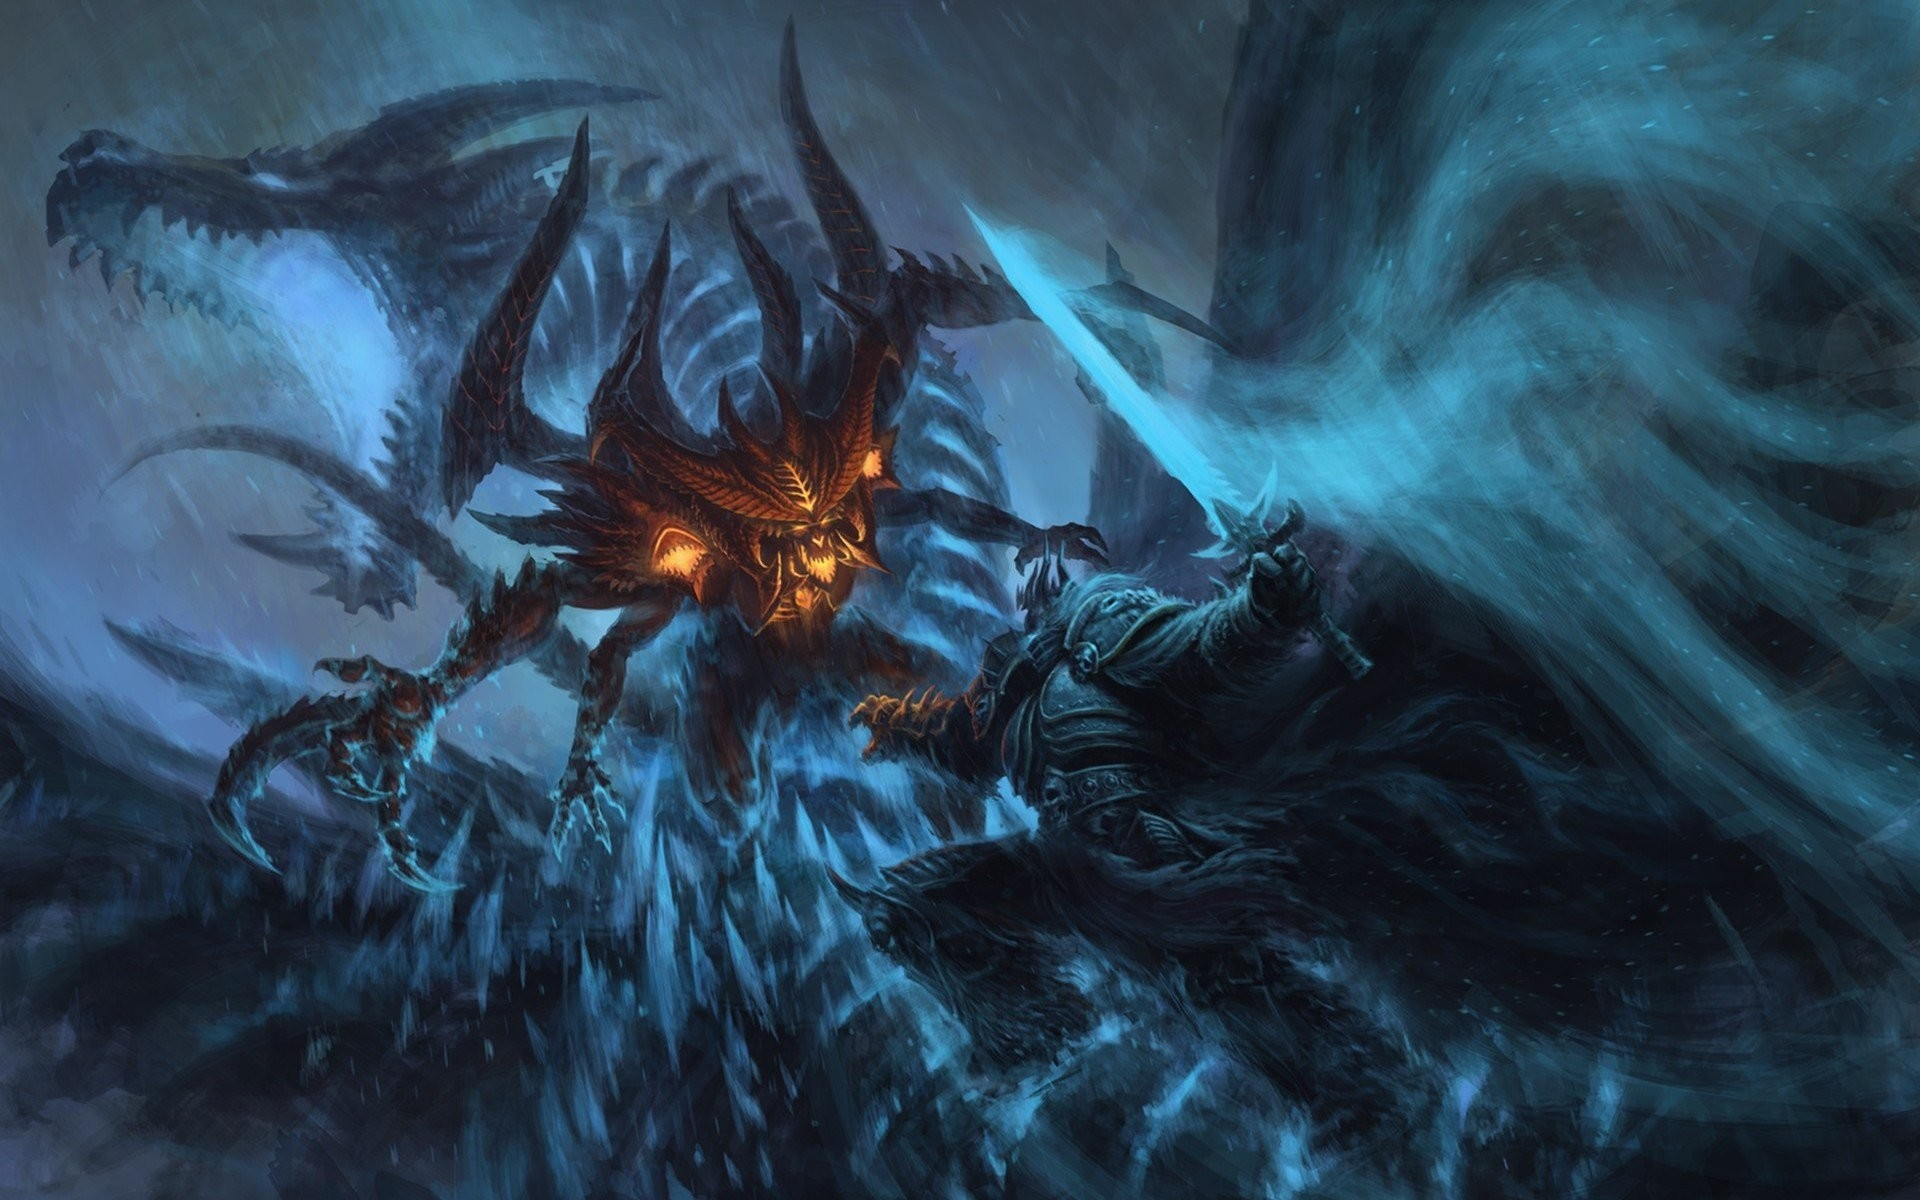 Heroes Of The Storm Wallpaper 1080p: Arthas Wallpapers (68+ Images